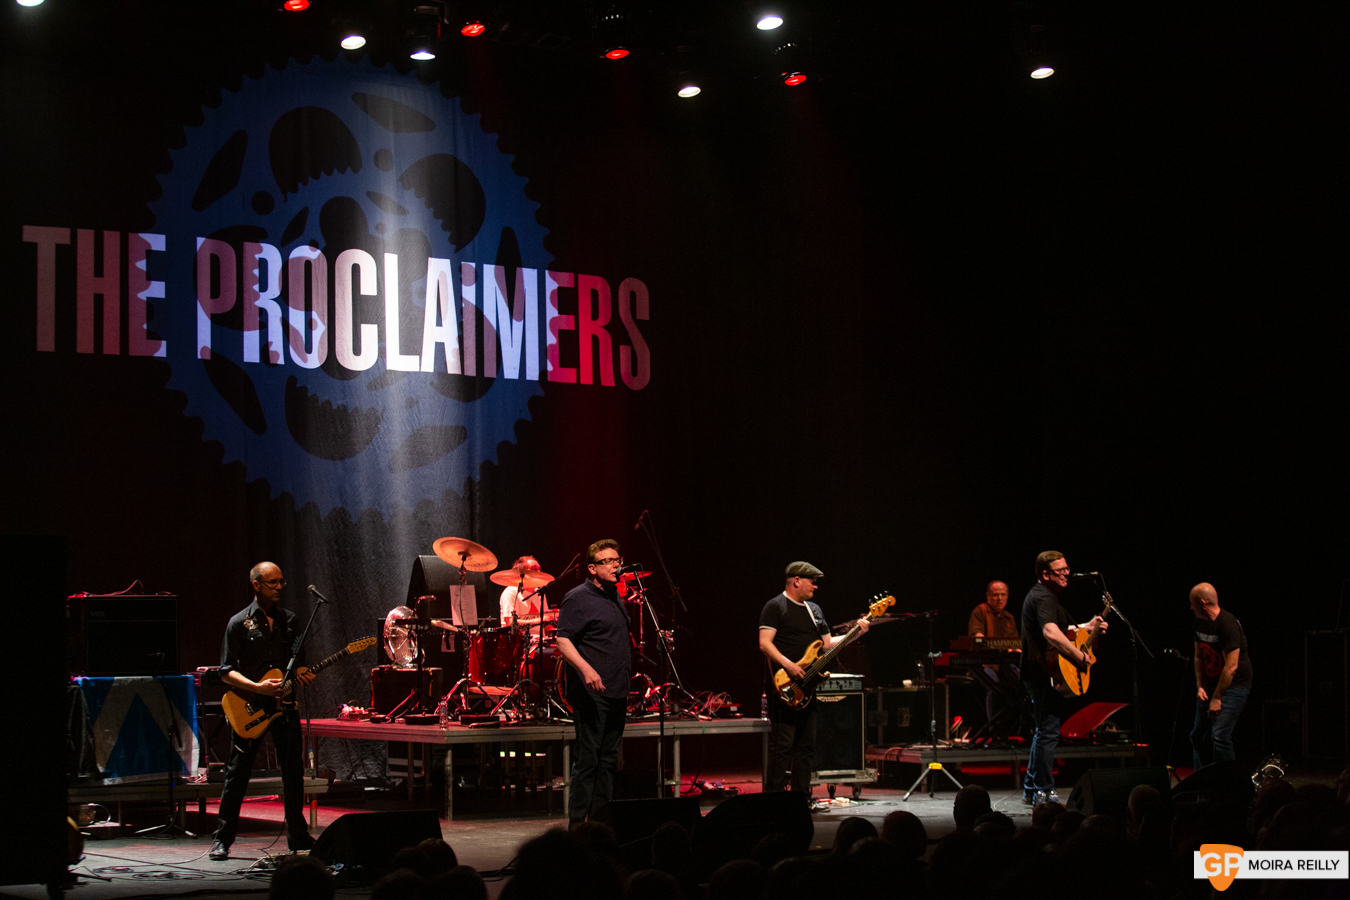 TheProclaimers_BordGais_7Sep19_MoiraReilly-1